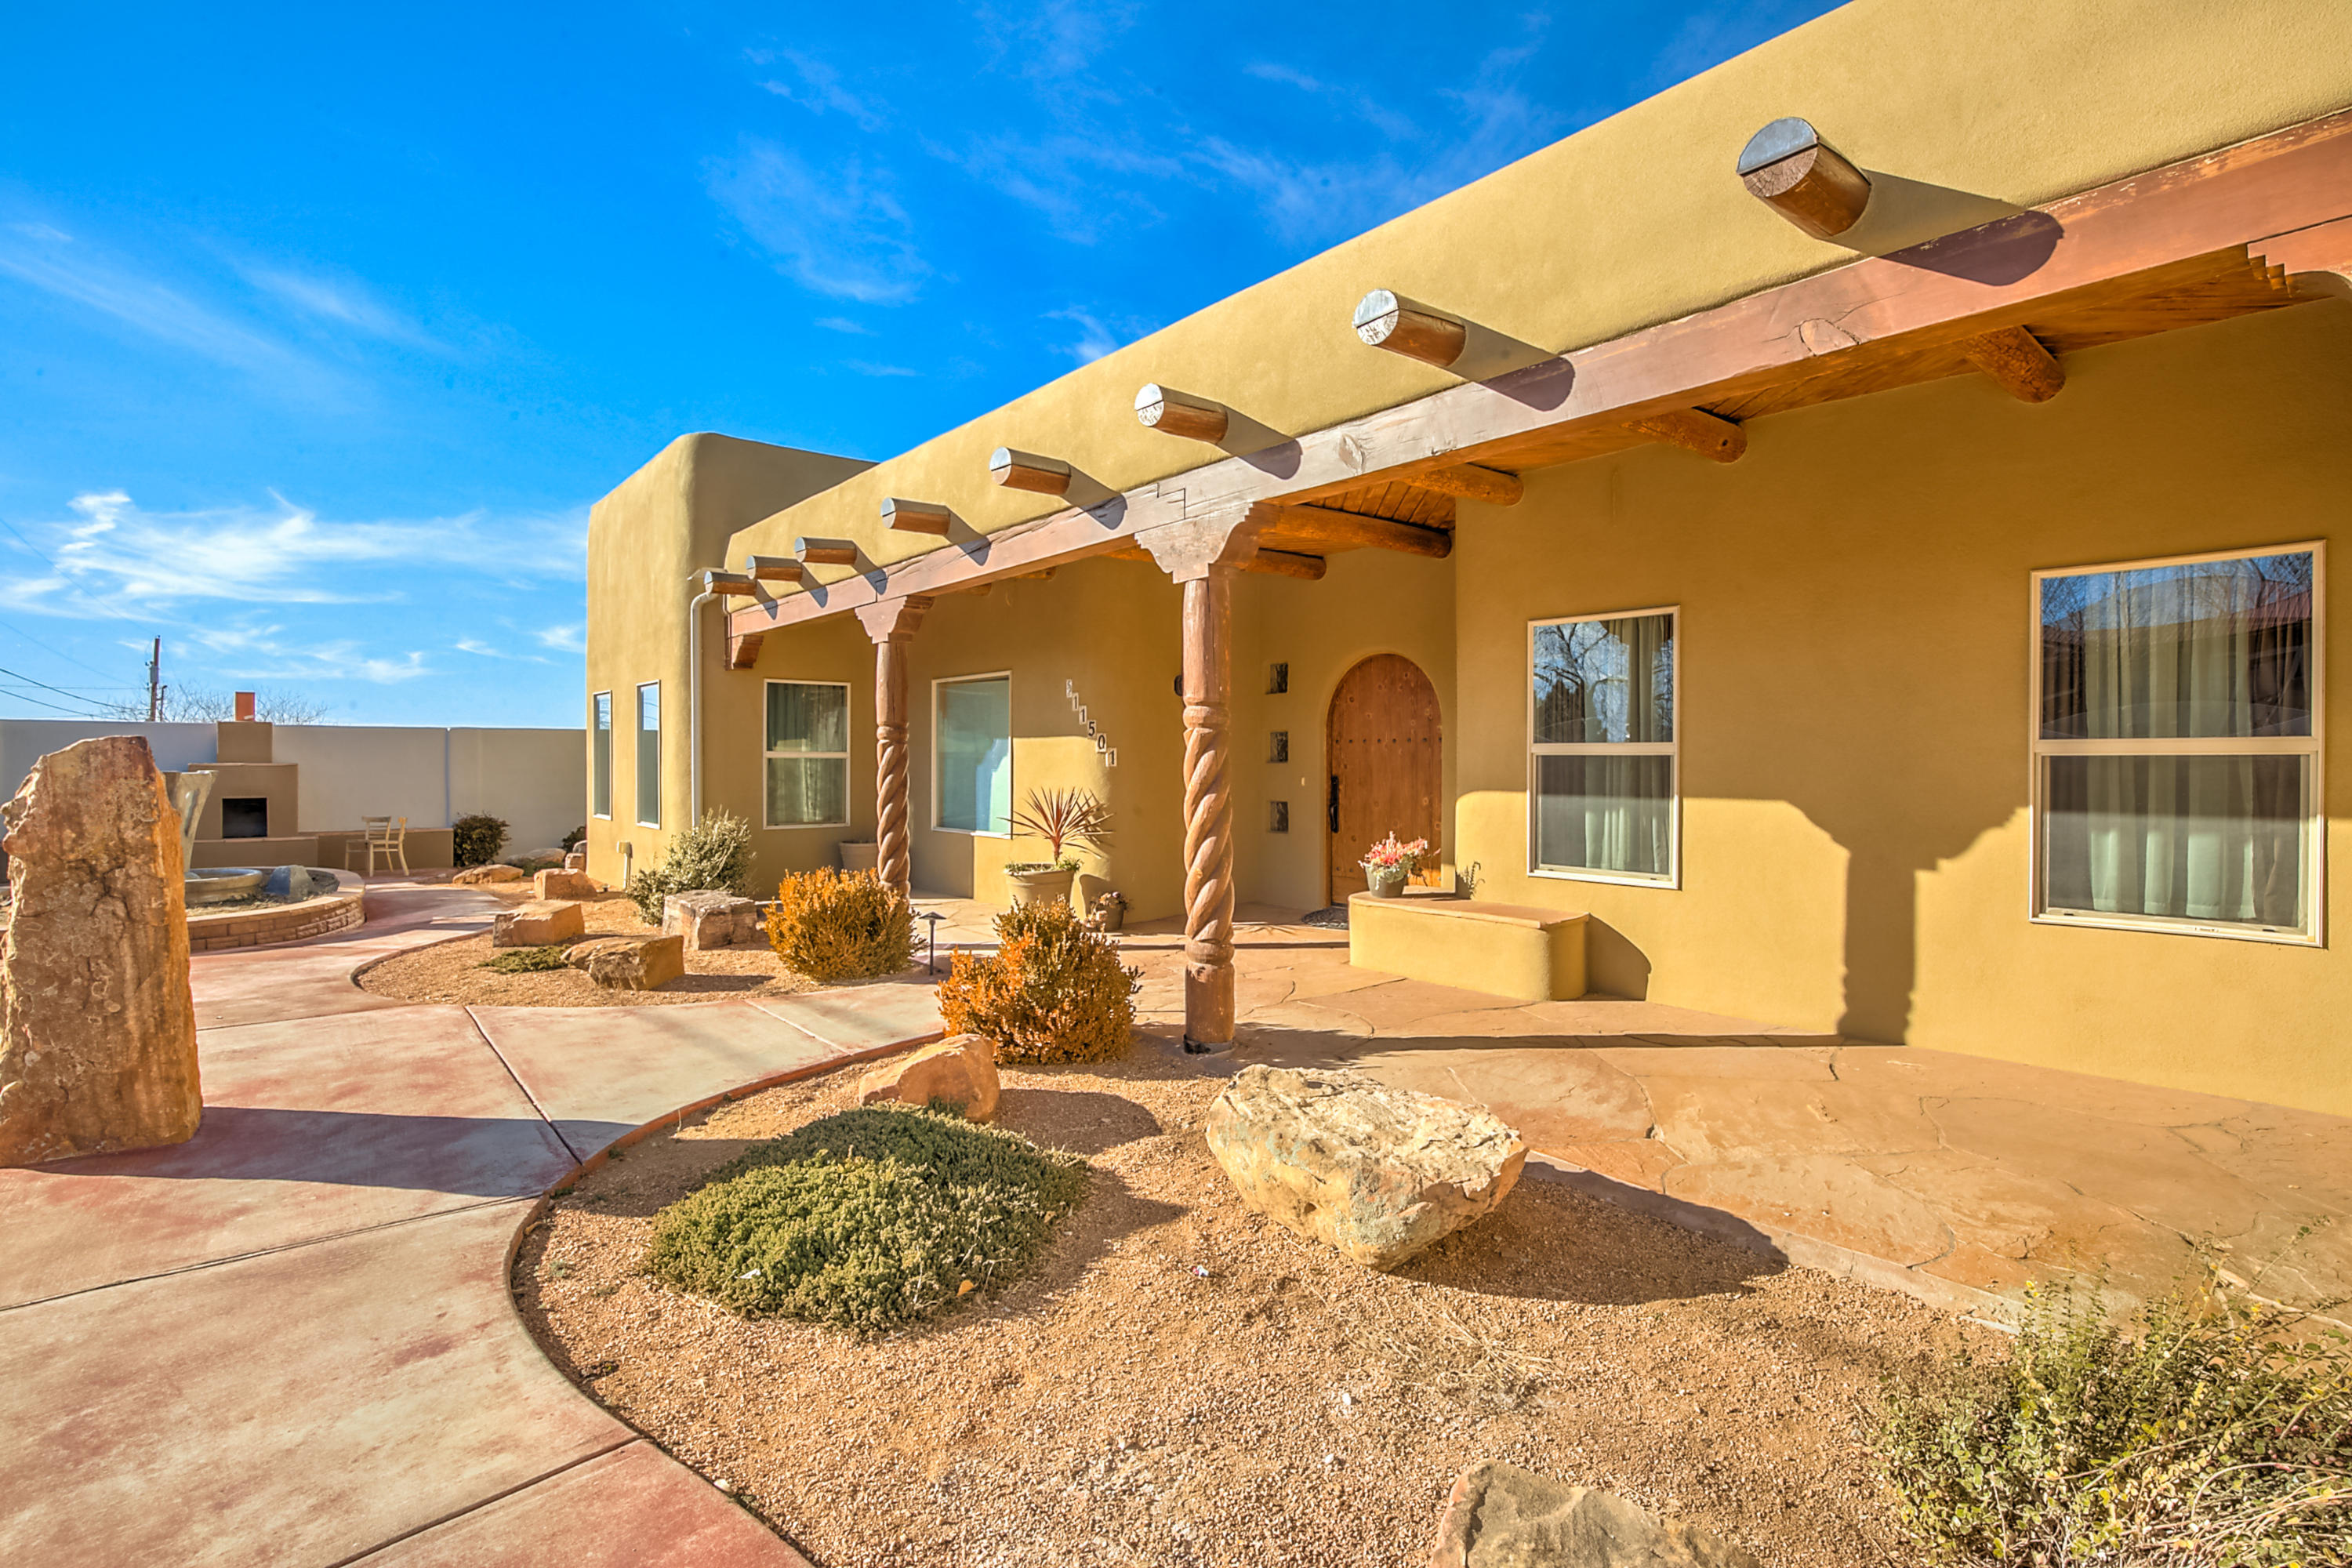 11501 RANCHITOS ROAD NE, ALBUQUERQUE, NM 87122